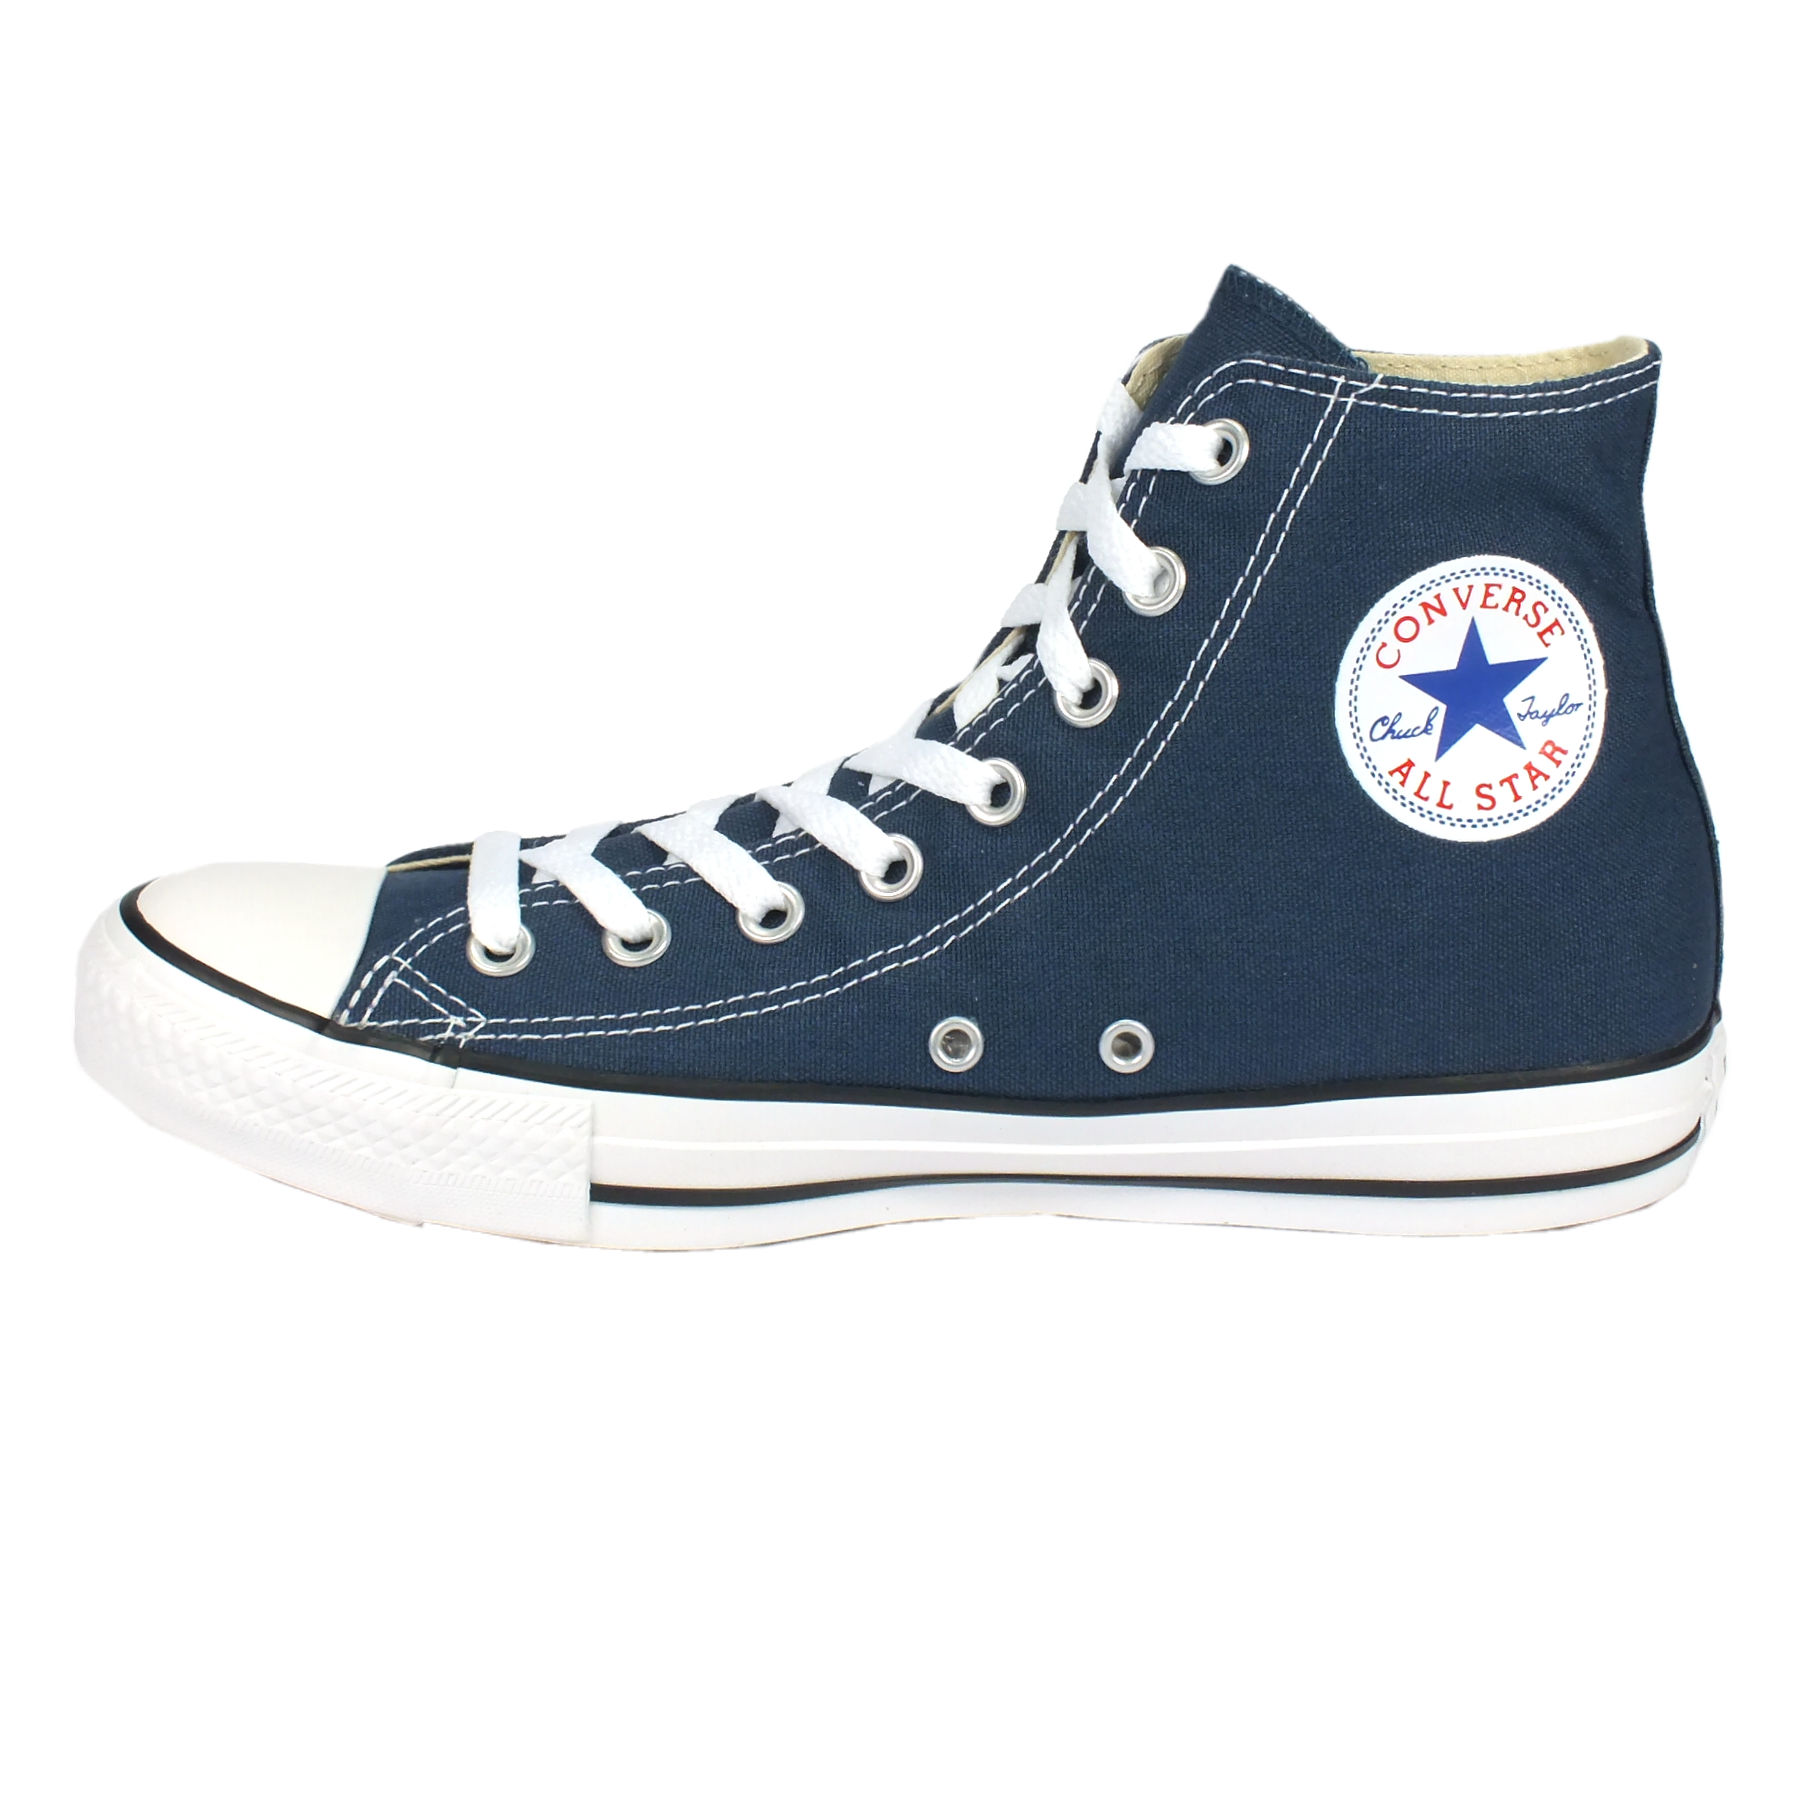 converse chuck taylor all star hi shoes high top sneaker womens mens. Black Bedroom Furniture Sets. Home Design Ideas